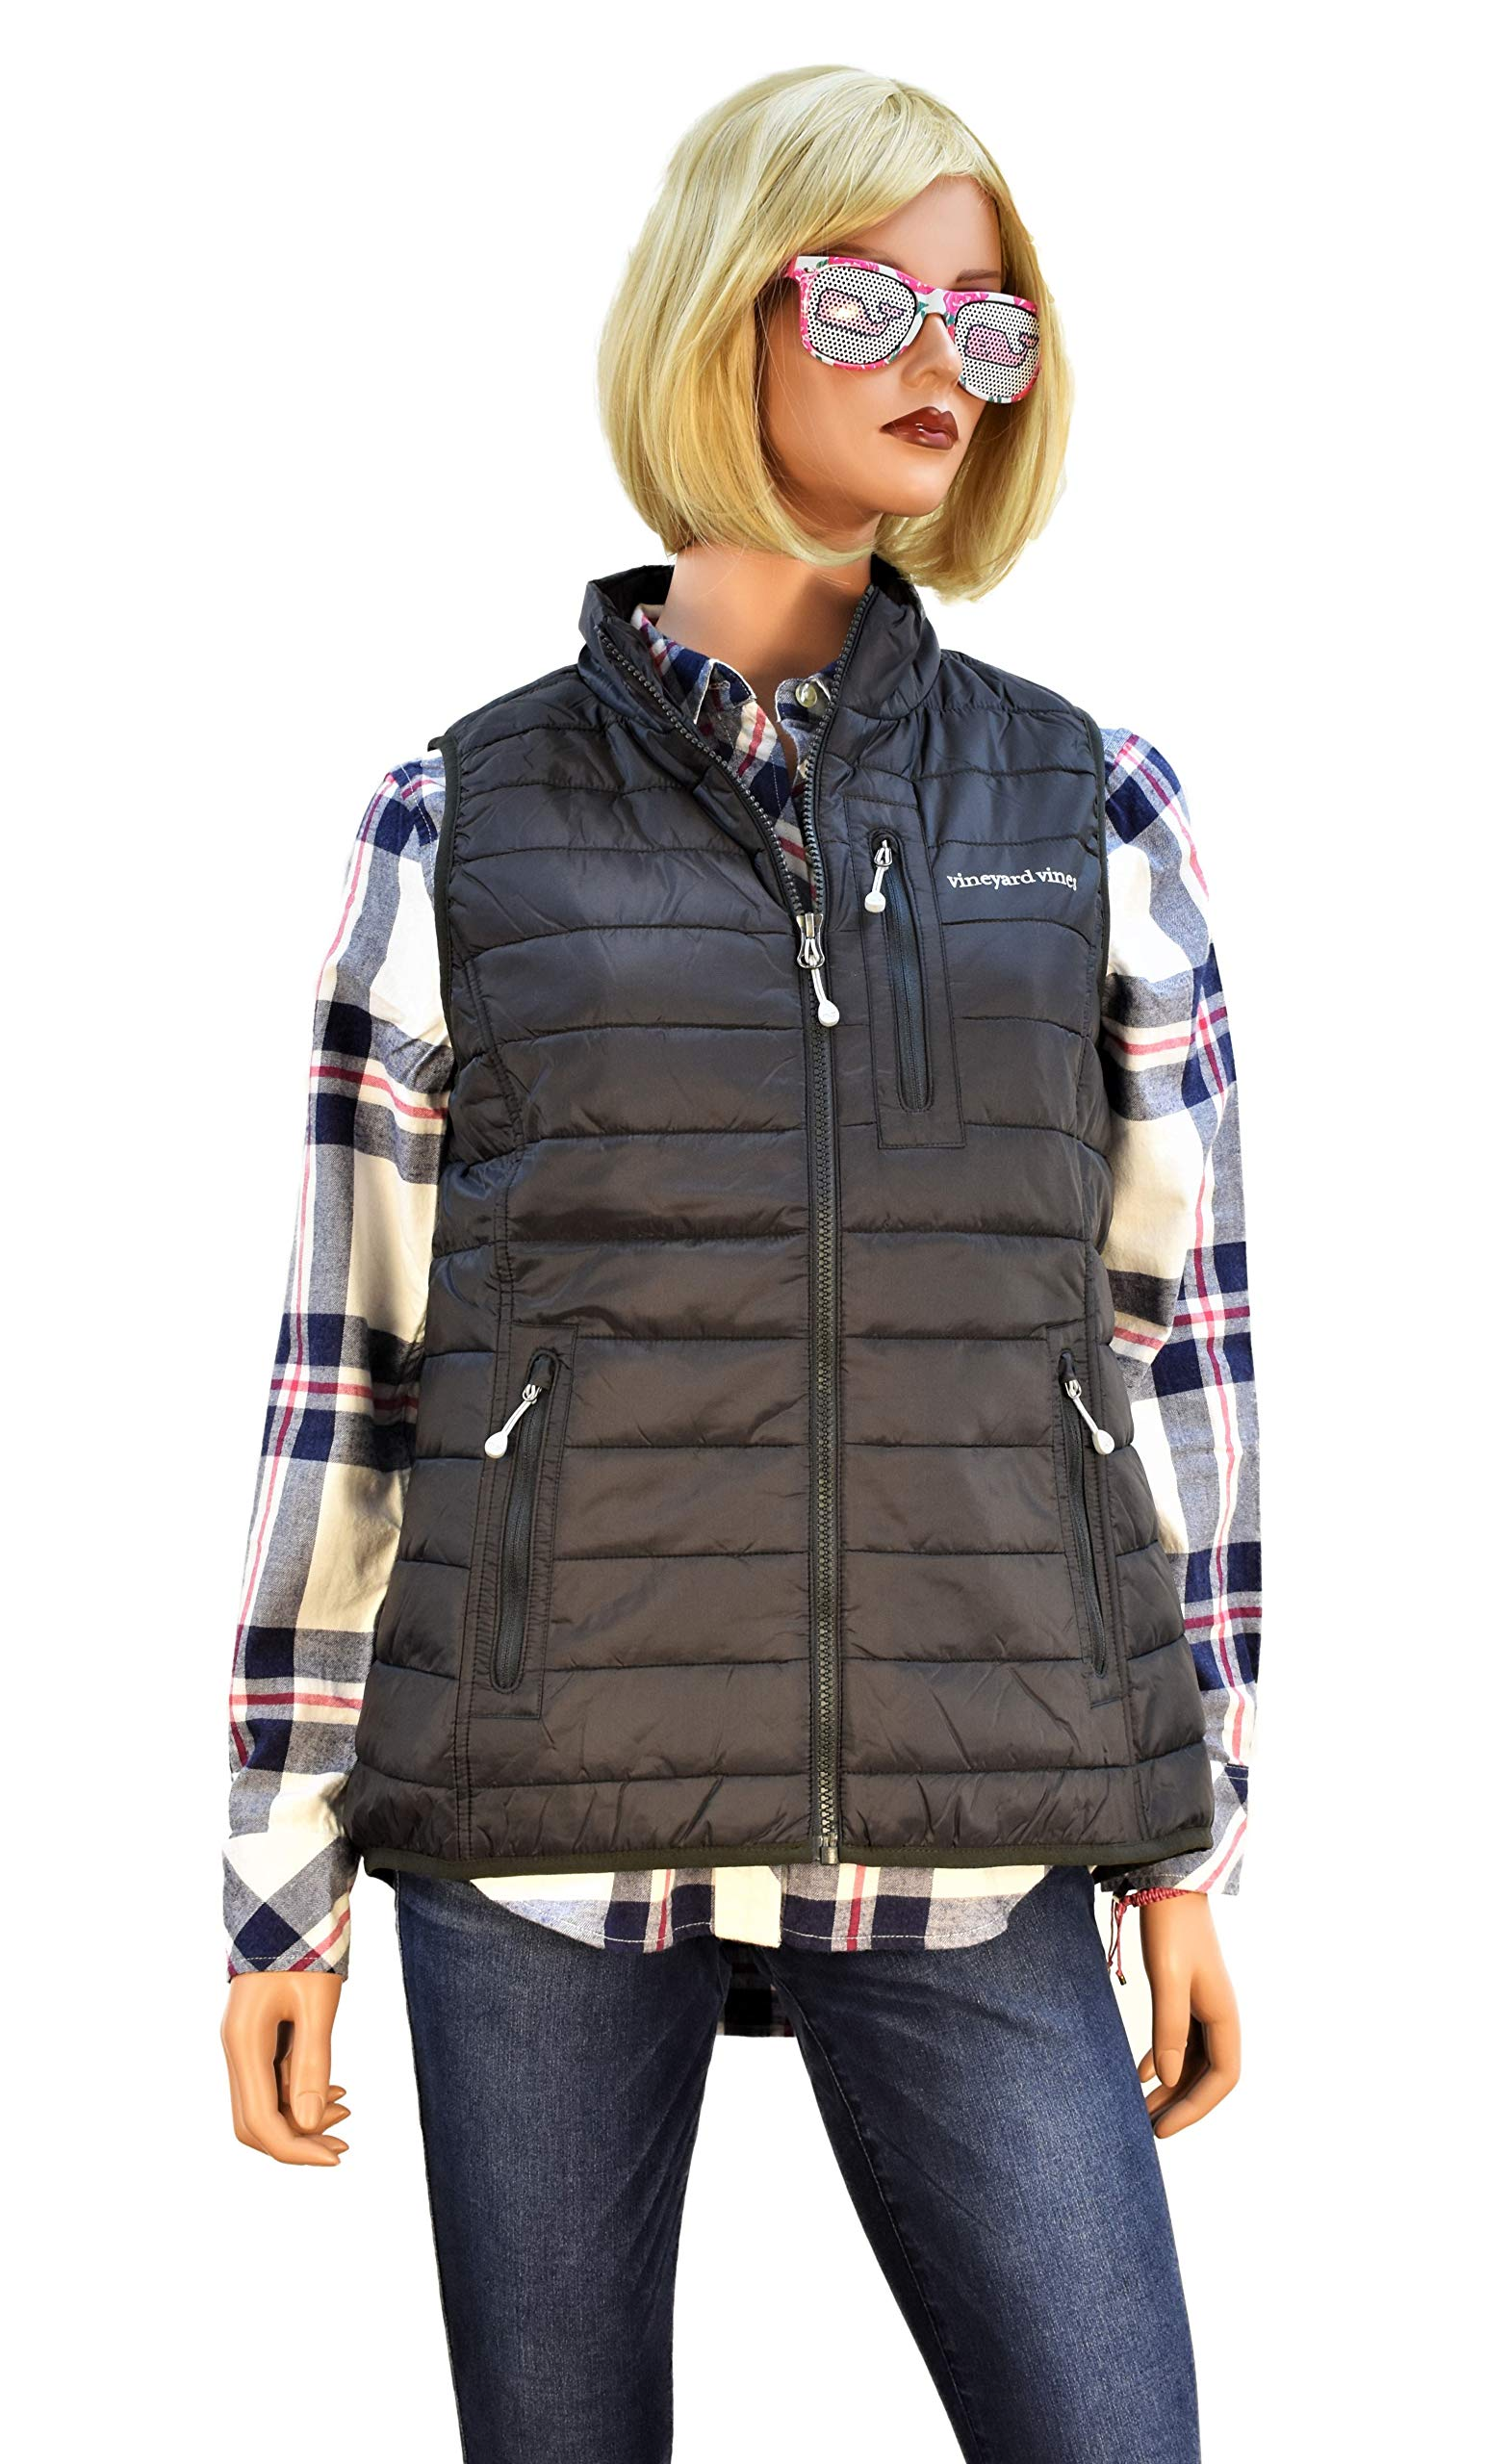 Vineyard Vines Women's Puffer Vest Rhododendron Pink (X-Small, Squall Gray)